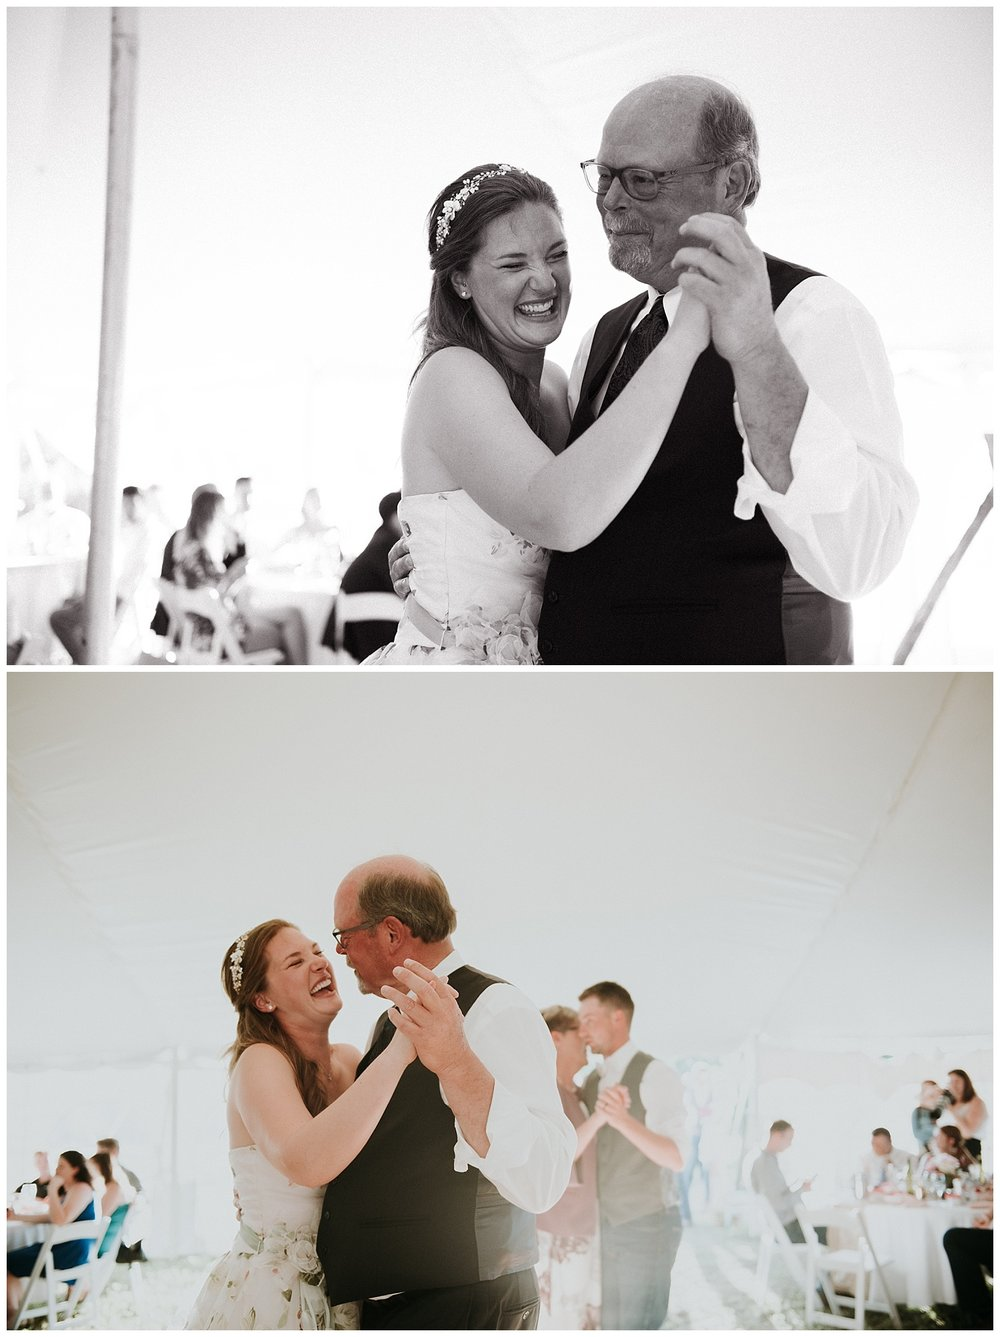 First Dance at Relaxed Frontyard Wedding in Trenton, Ontario | Holly McMurter Photographs